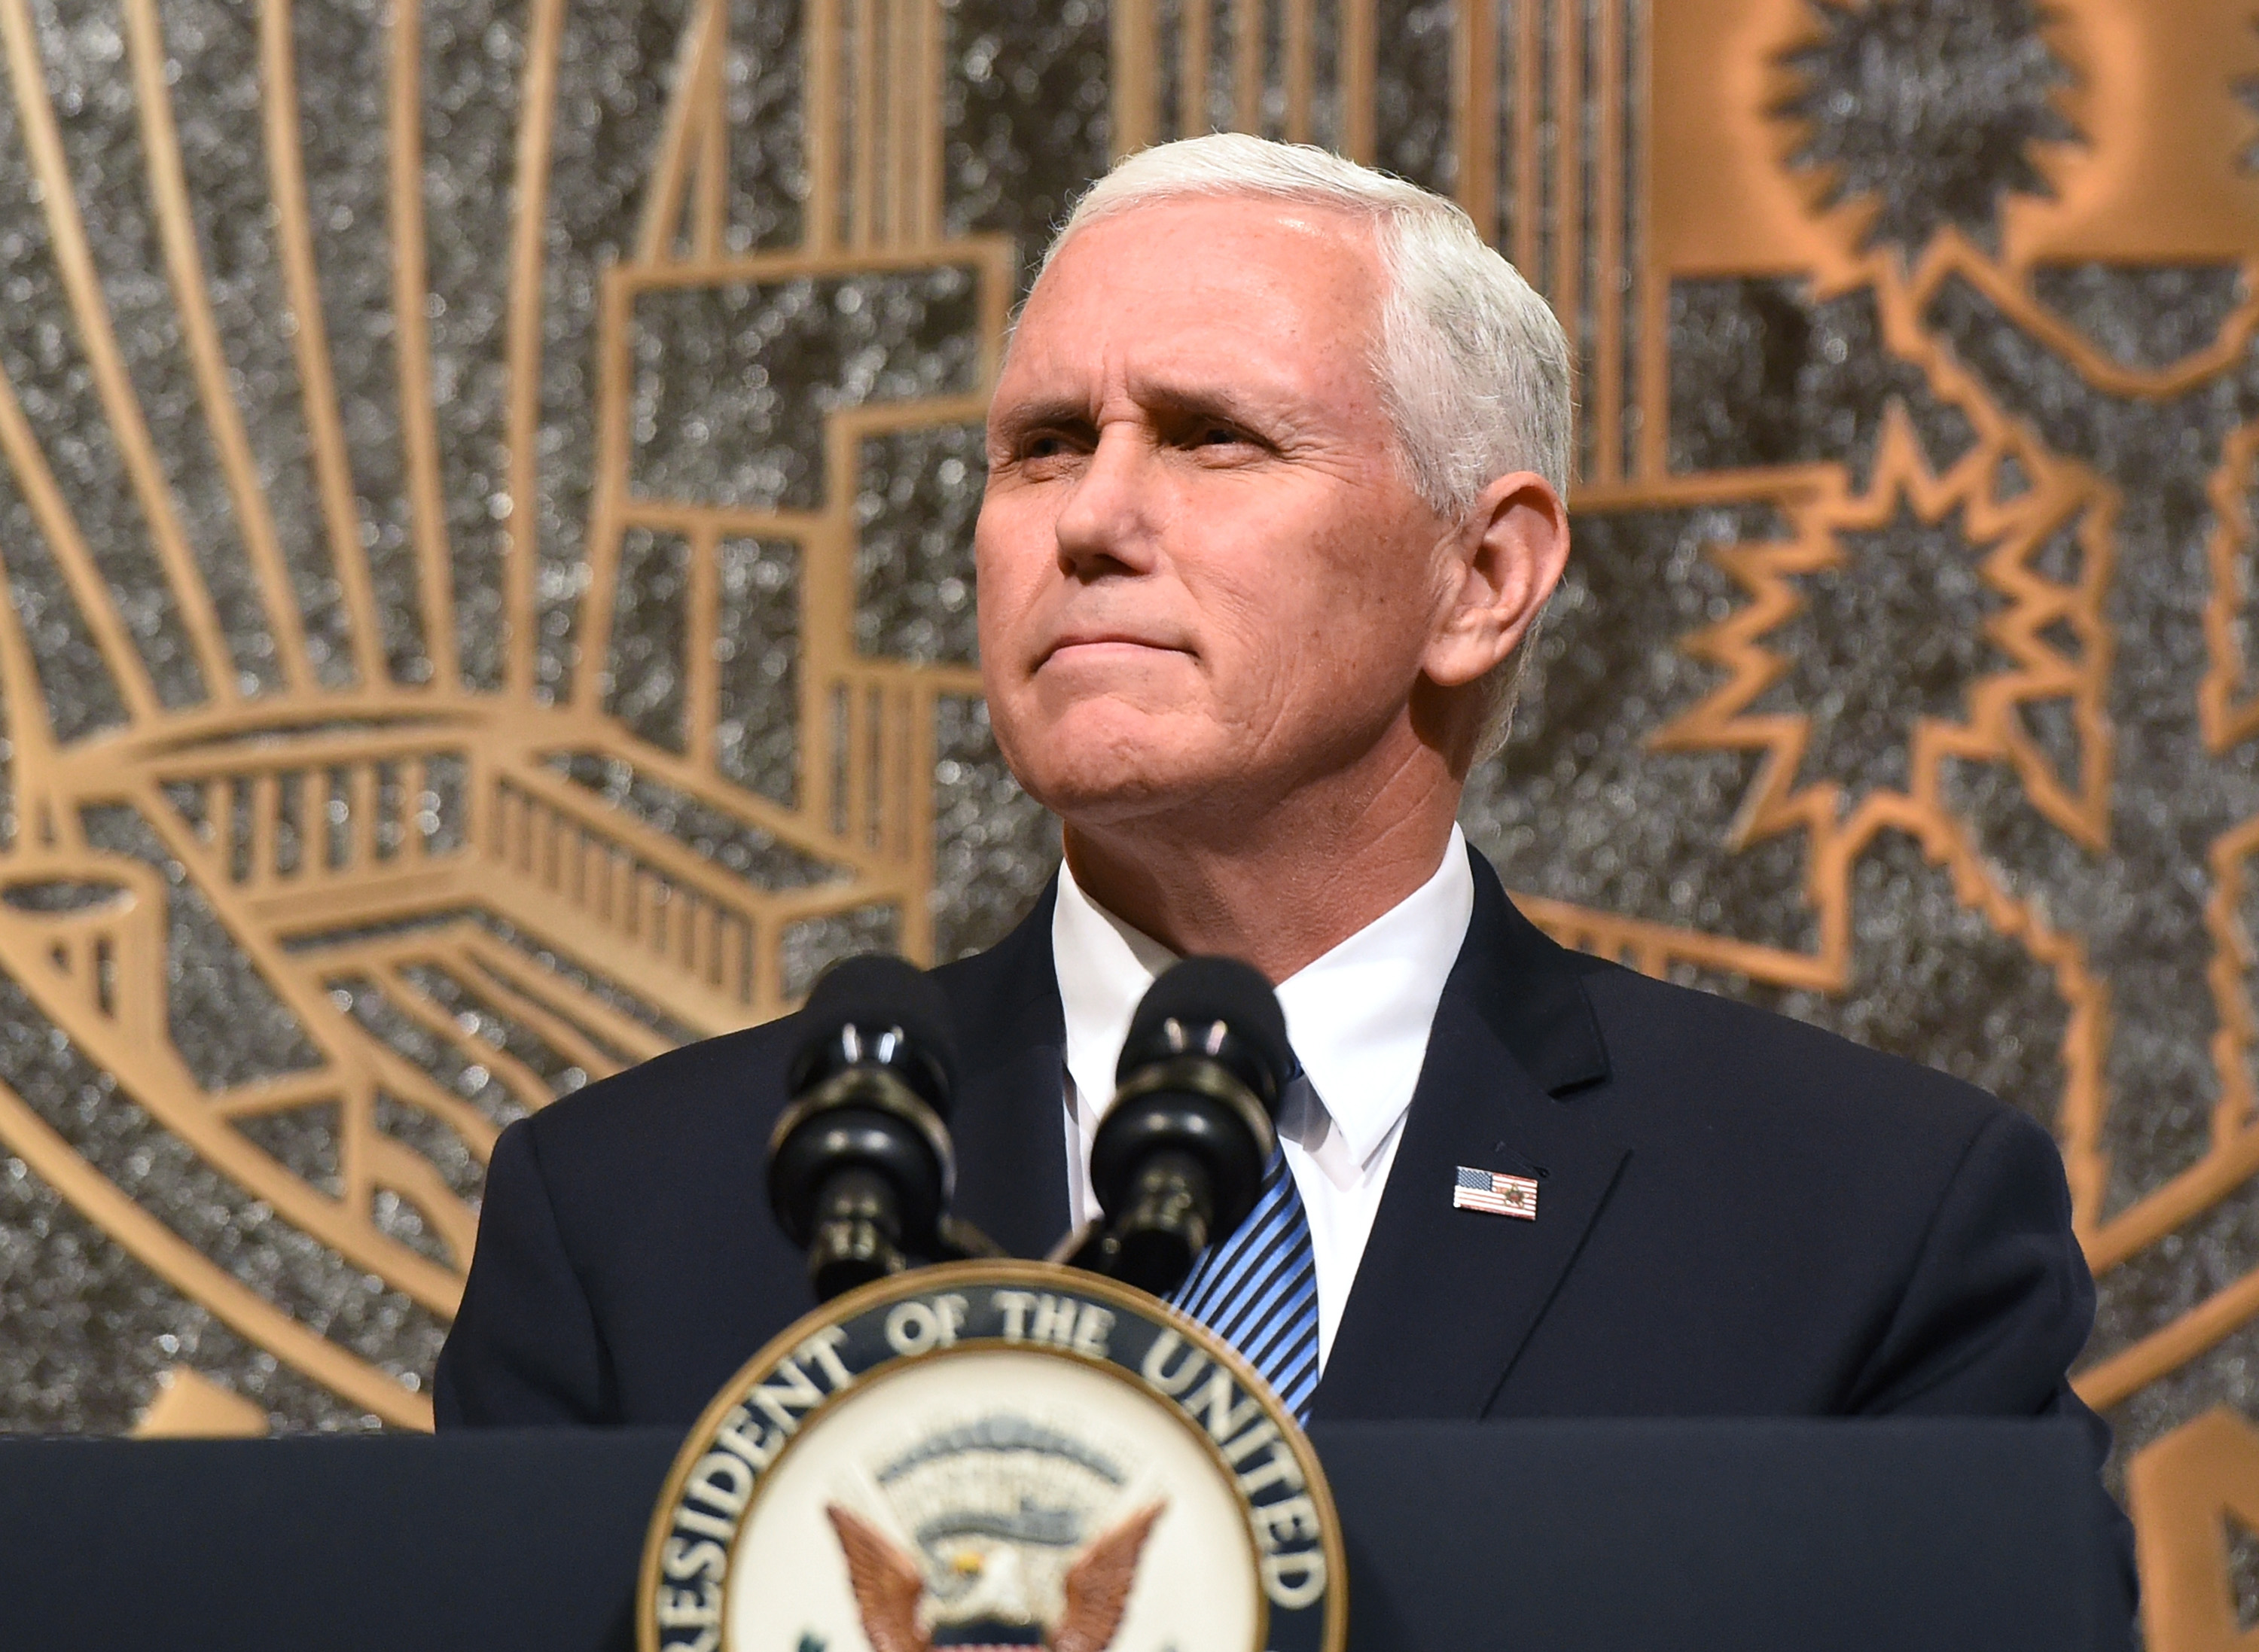 LAS VEGAS NV- OCTOBER 07 U.S. Vice President Mike Pence speaks at the culmination of a faith unity walk held to help the community heal after Sunday's mass shooting at Las Vegas City Hall